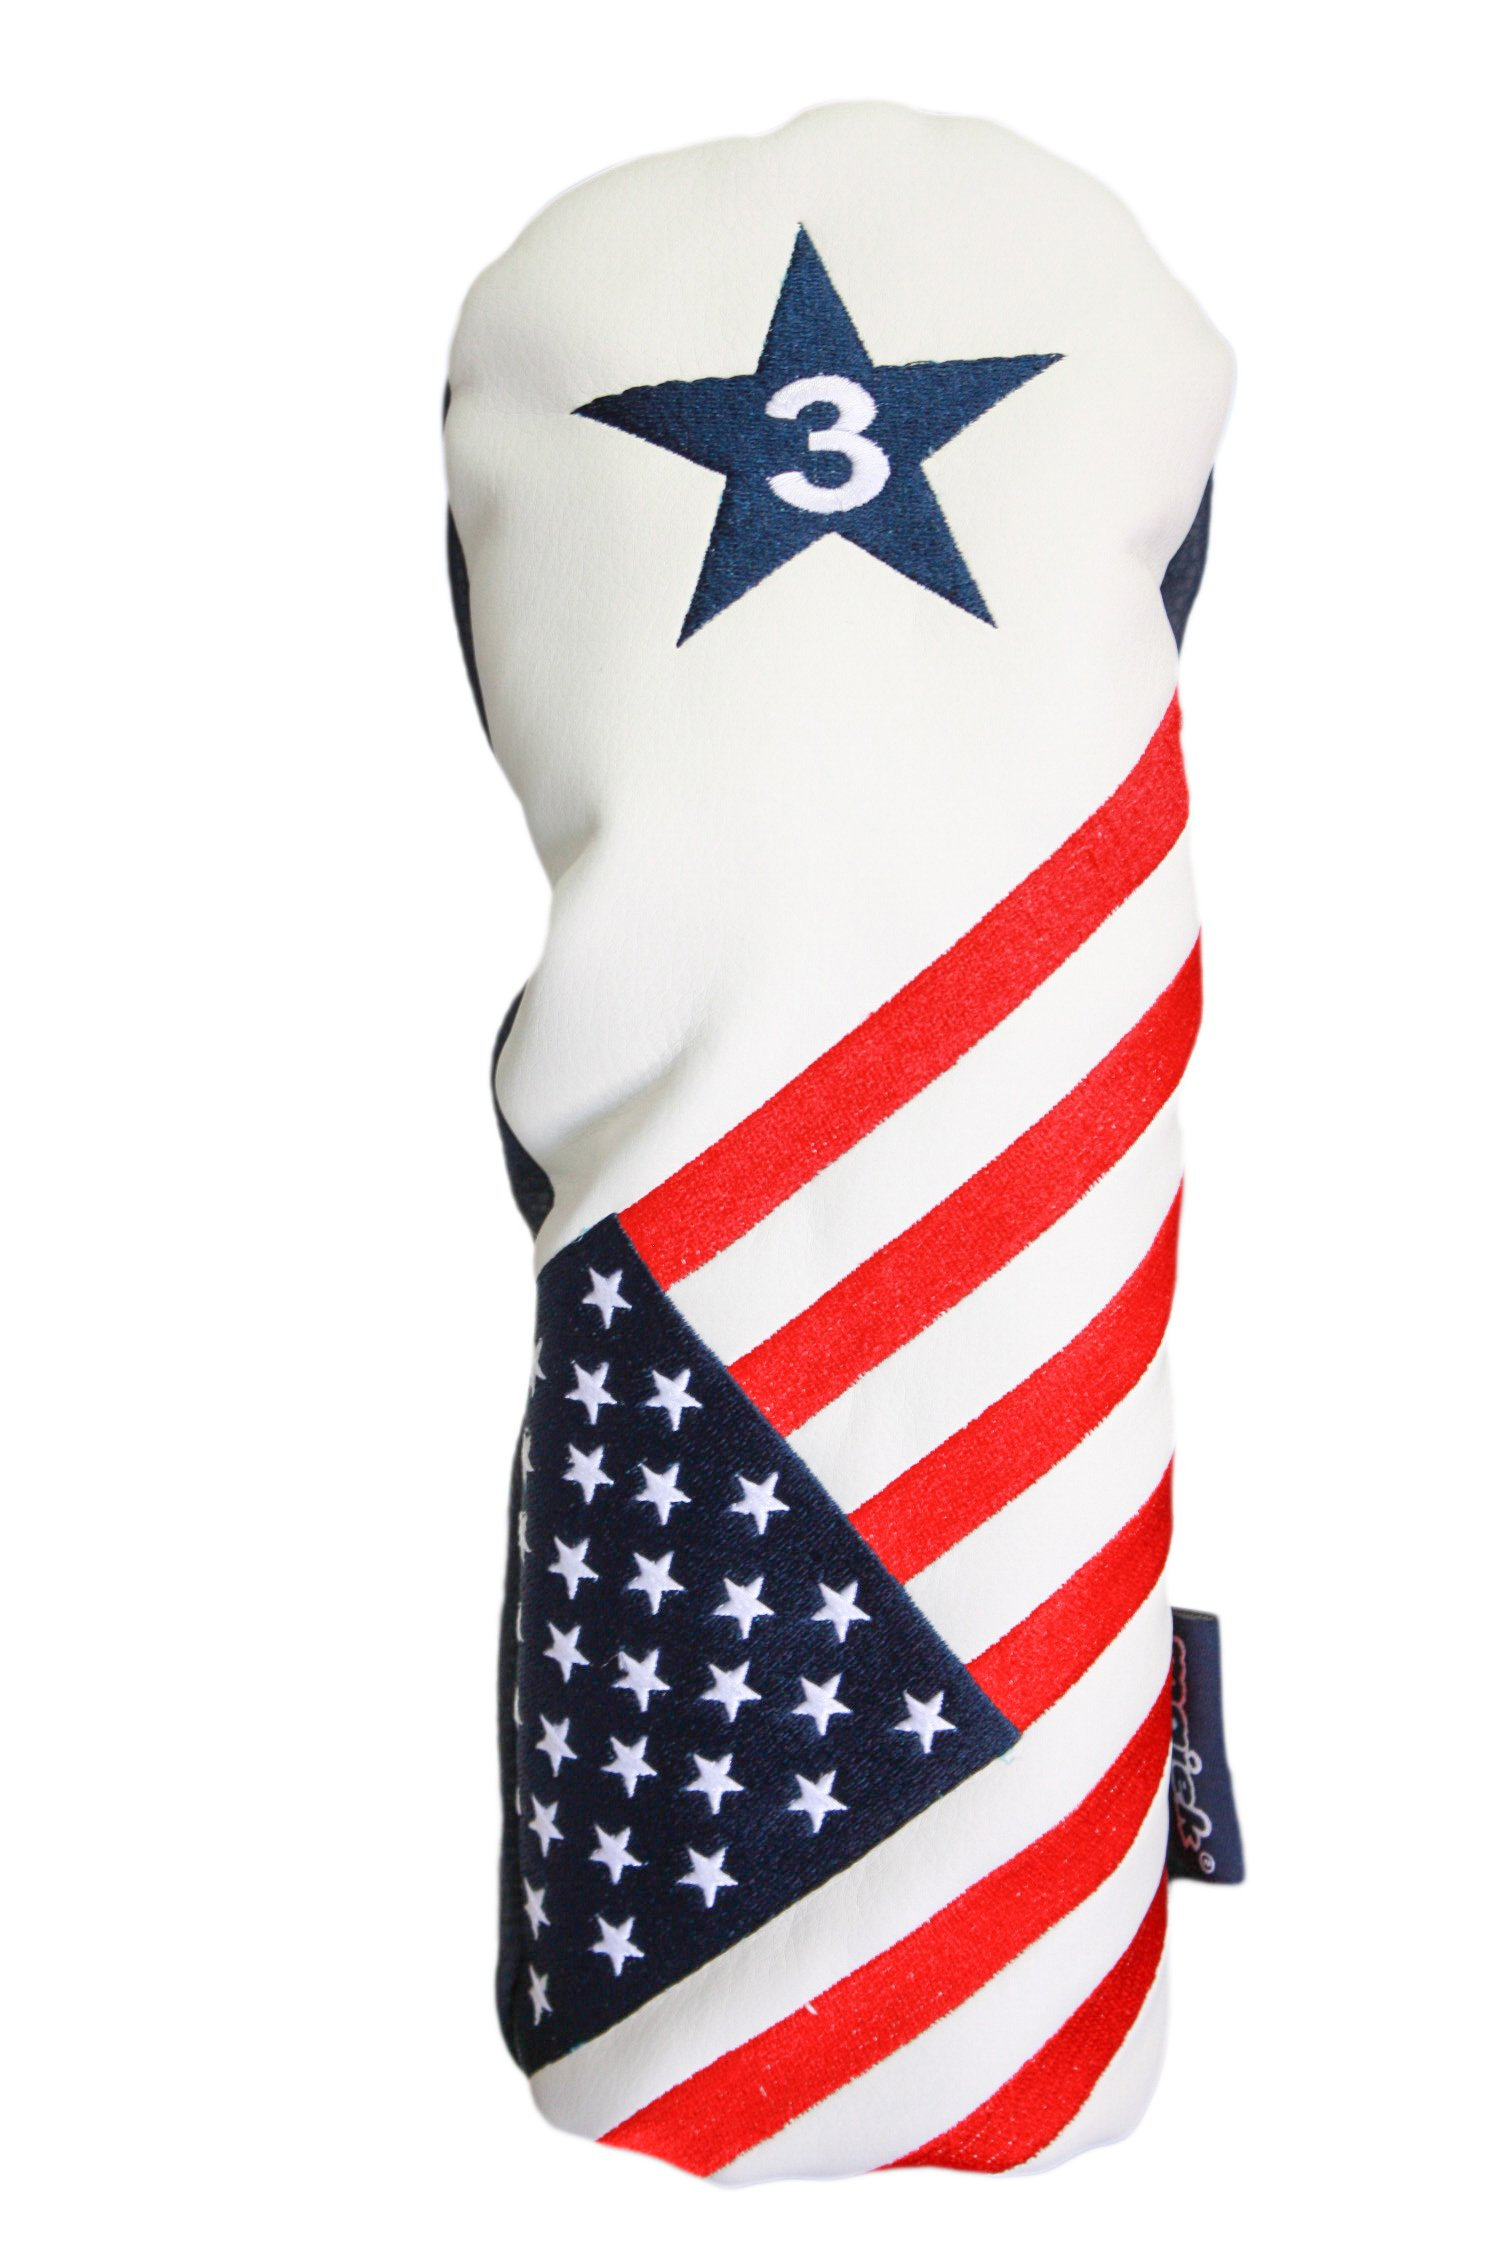 USA 1 3 X Golf Headcover Patriot Vintage Retro Patriotic Driver Fairway Wood Head Cover by Majek USA Vintage Golf Driver Headcover (Image #4)